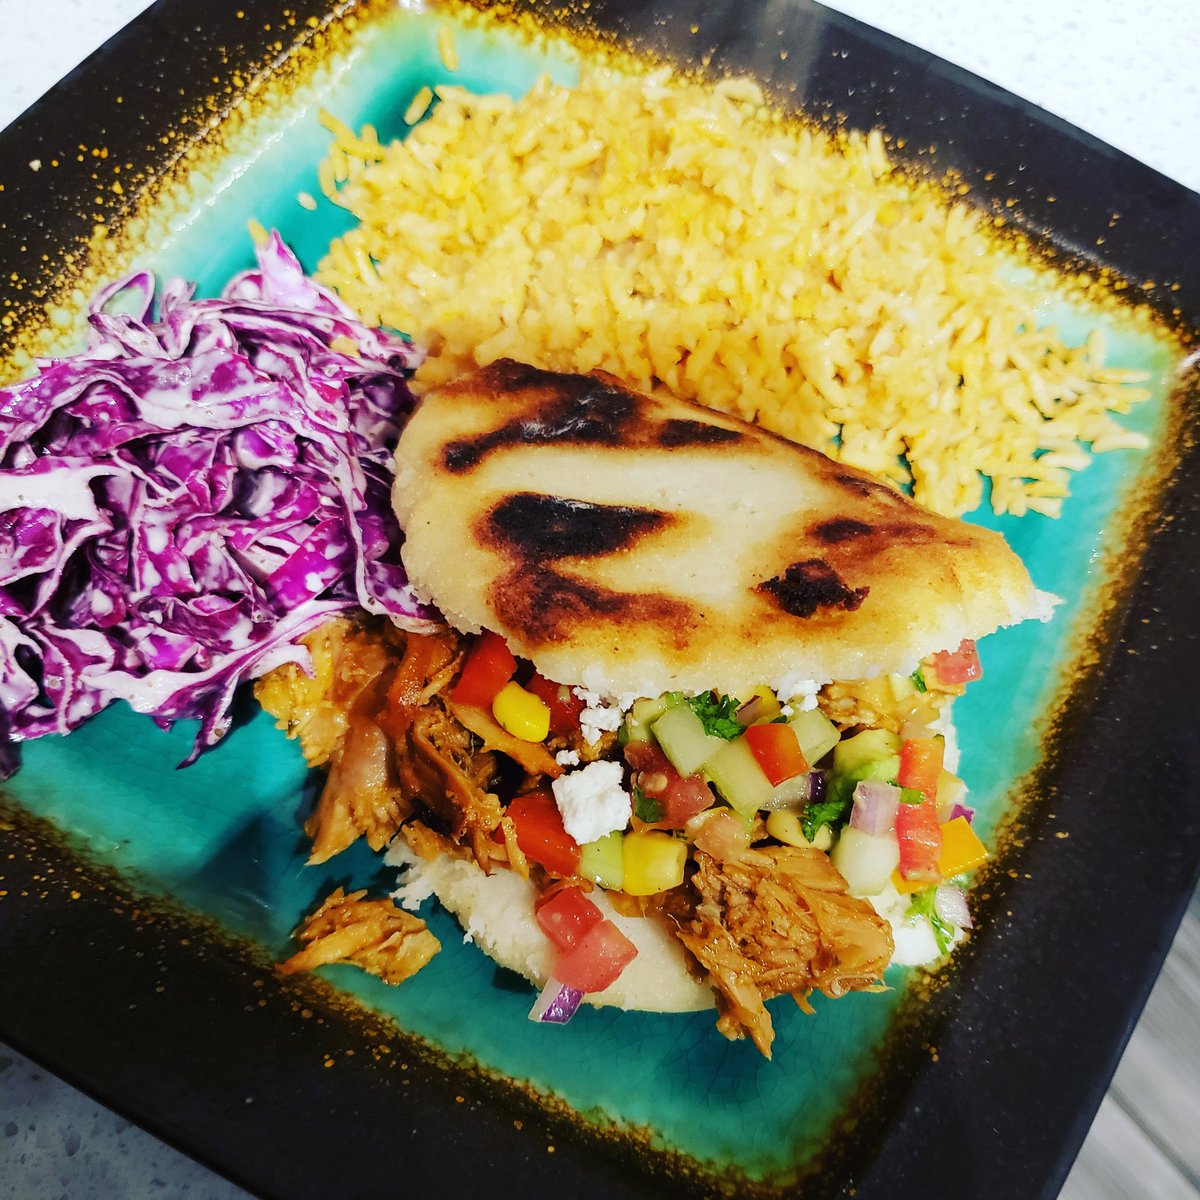 @GordonRamsay Arepas with corn salsa and red cabbage slaw. #homecook #foody #love https://t.co/Otue73oUcZ